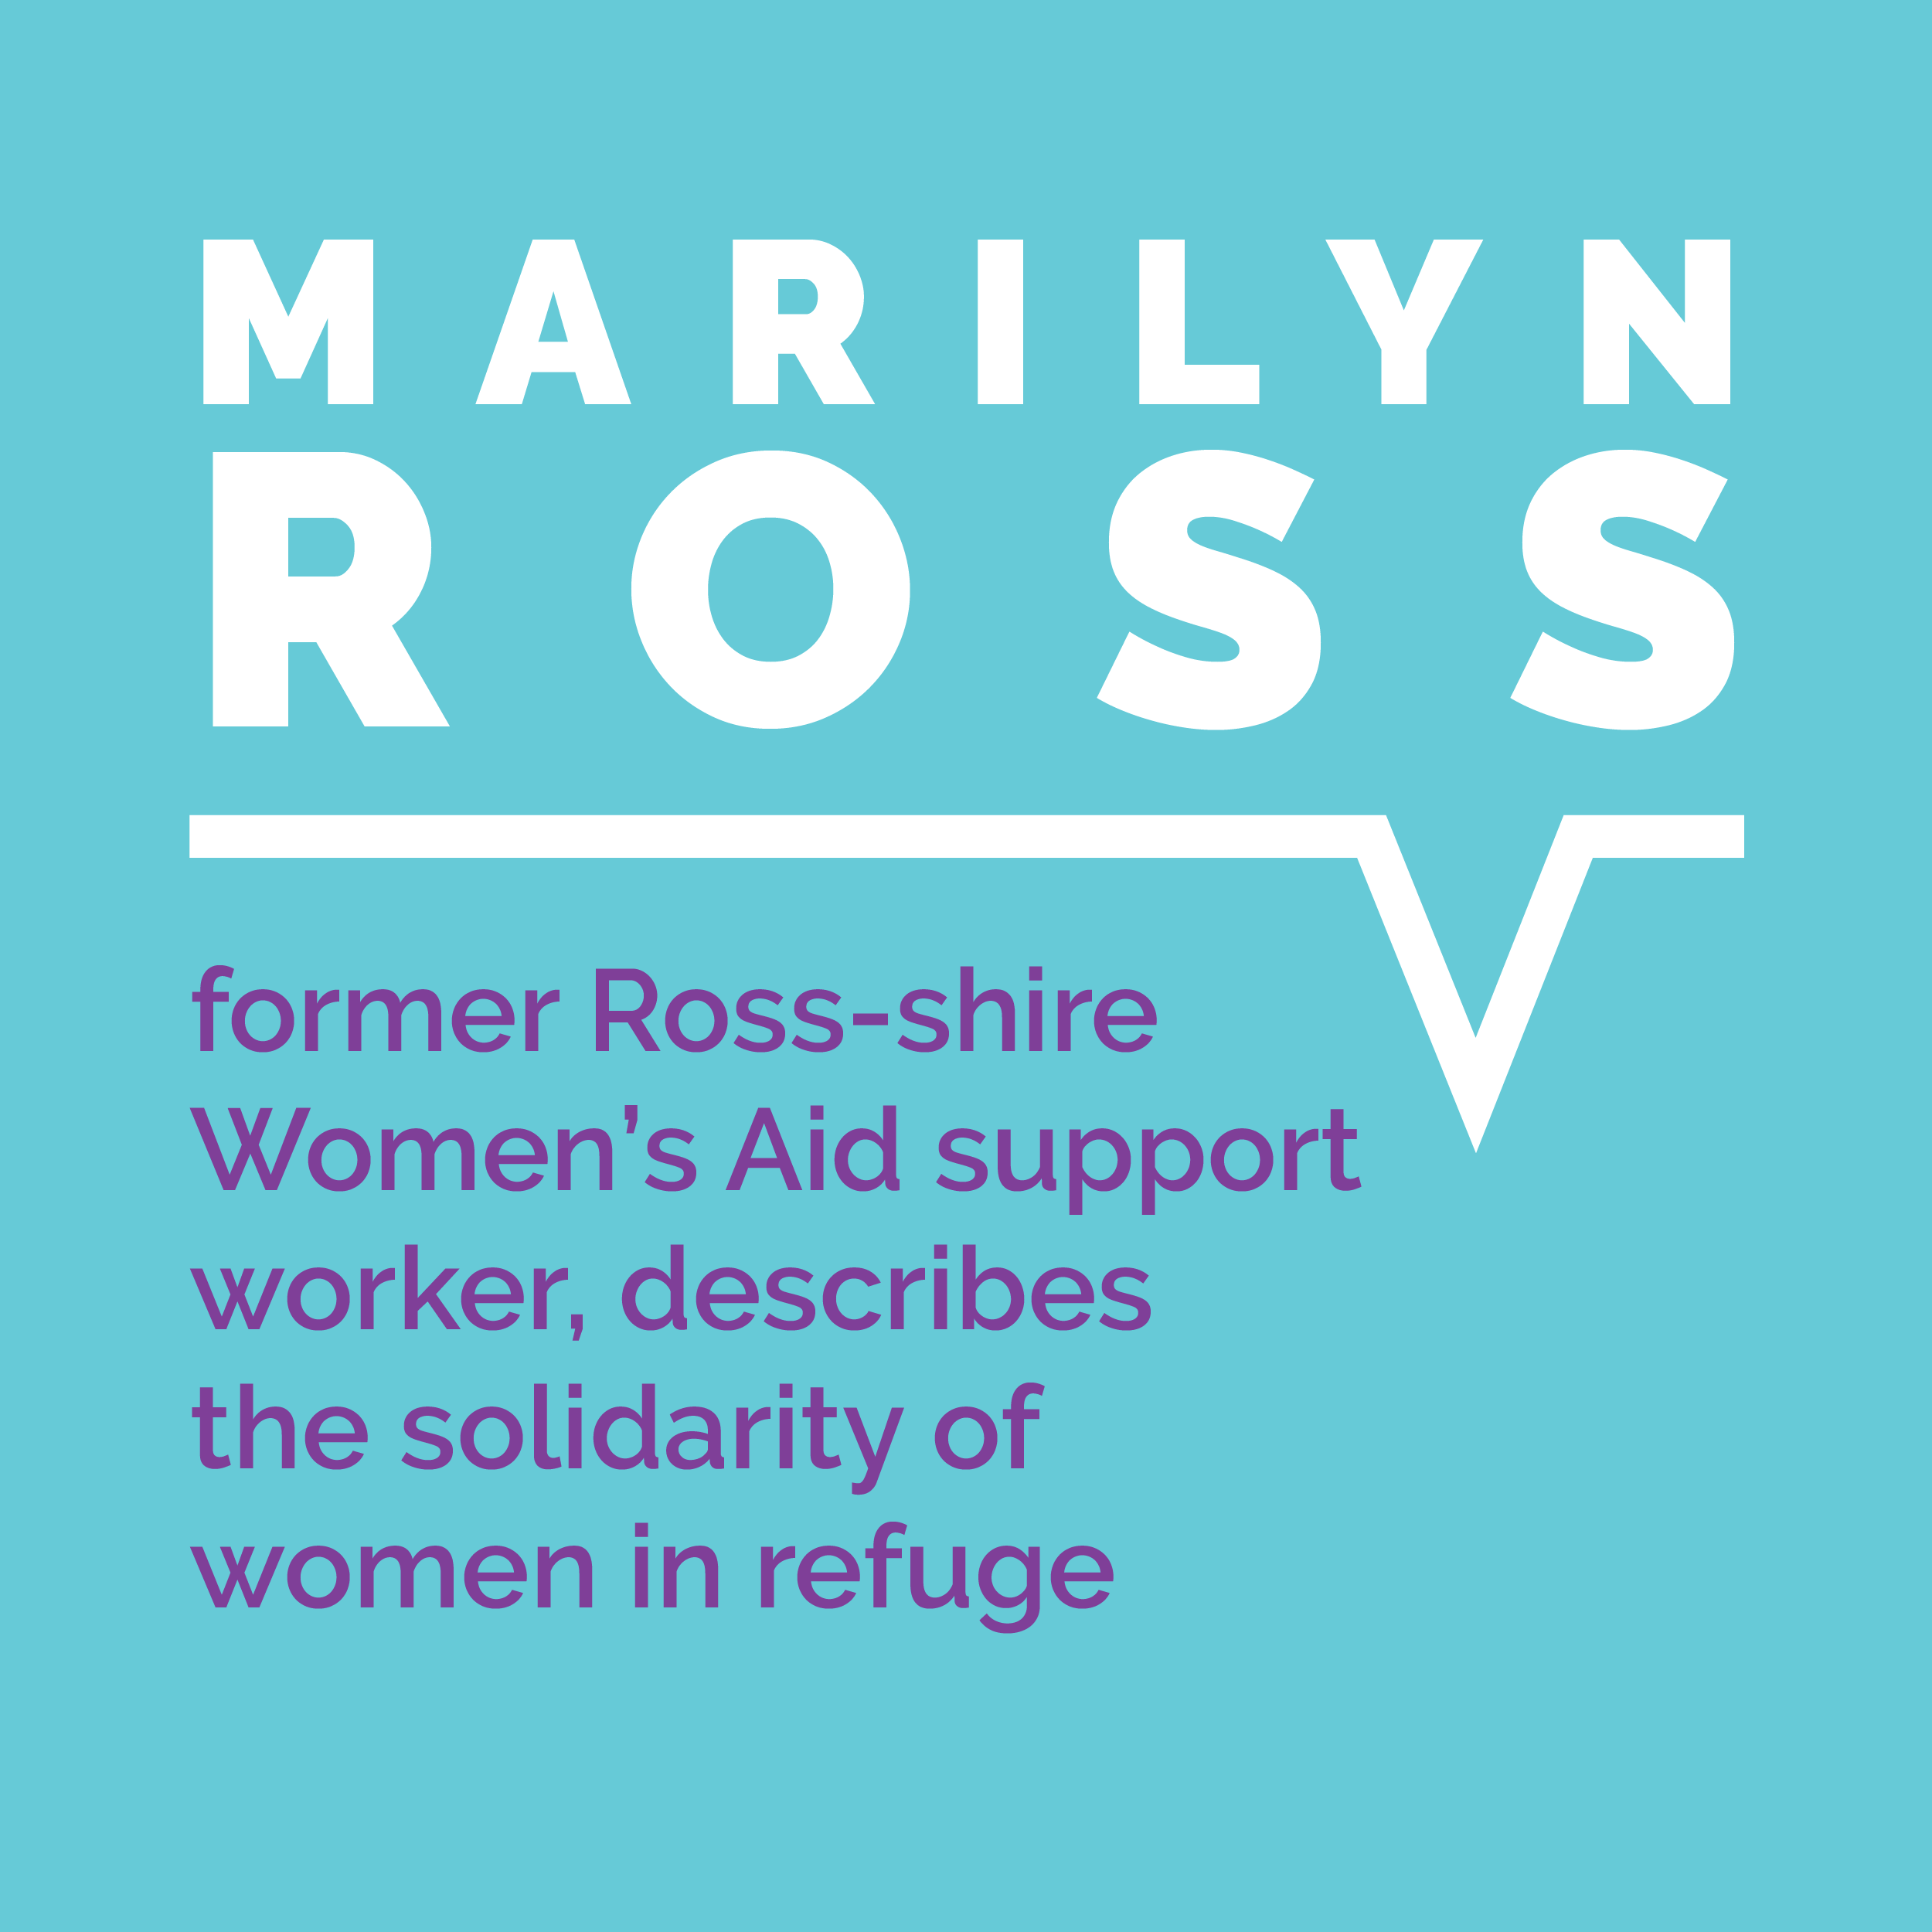 Marilyn Ross, former Ross-shire Women's Aid support worker, describes the solidarity of women in refuge